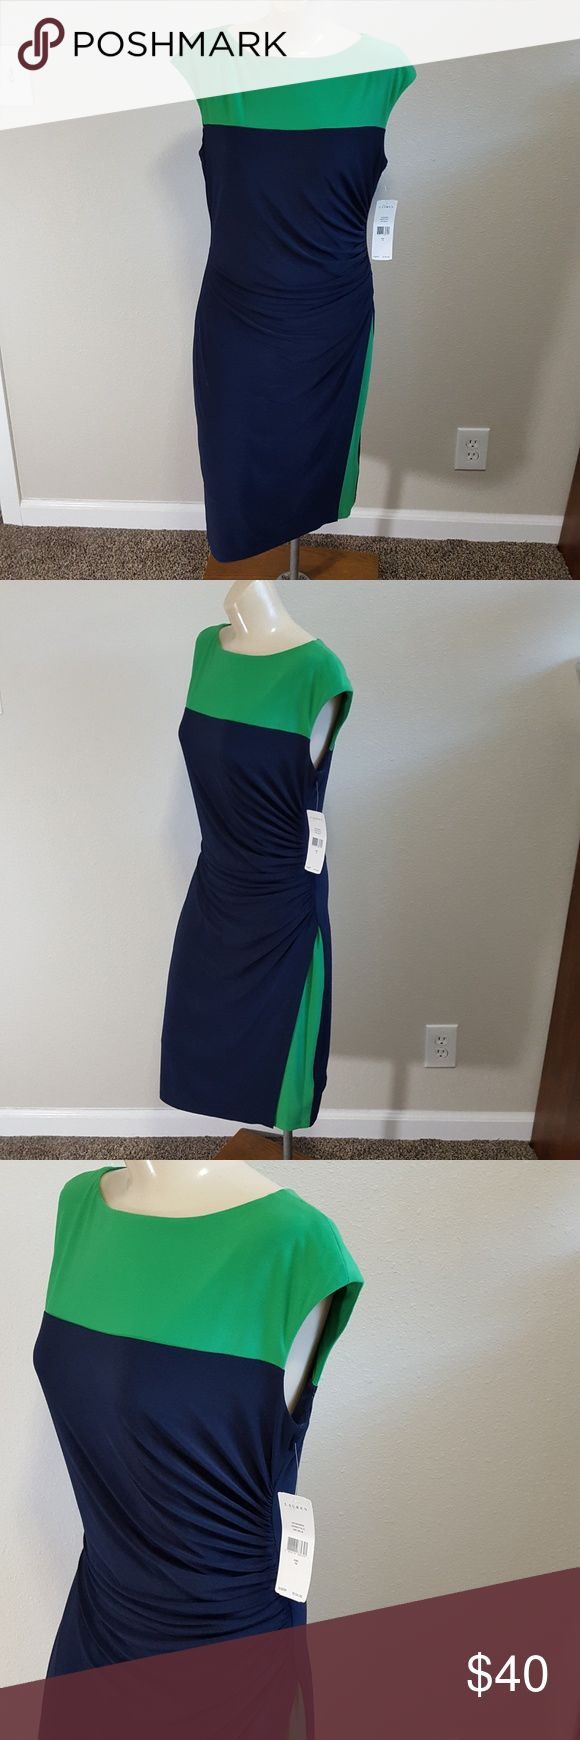 RALPH LAUREN Colorblock Ruched Dress SZ 10 NWT NEW WITH TAG (original tag $134.00) Ralph Lauren dress is Stylish, comfortable, and cute! Stylish with blocks of green that accentuate the curve-defining fit with ruching down one side seam Comfortable with it's stretchy construction which ensures continuous comfort. Cute sheath with cap-sleeves .   Details: 40-in. approx. length from shoulder to hem 19 in. from armpit to armpit  Fully lined Short Cap sleeves 95% polyester/ 5% elastane SIZE: 10…